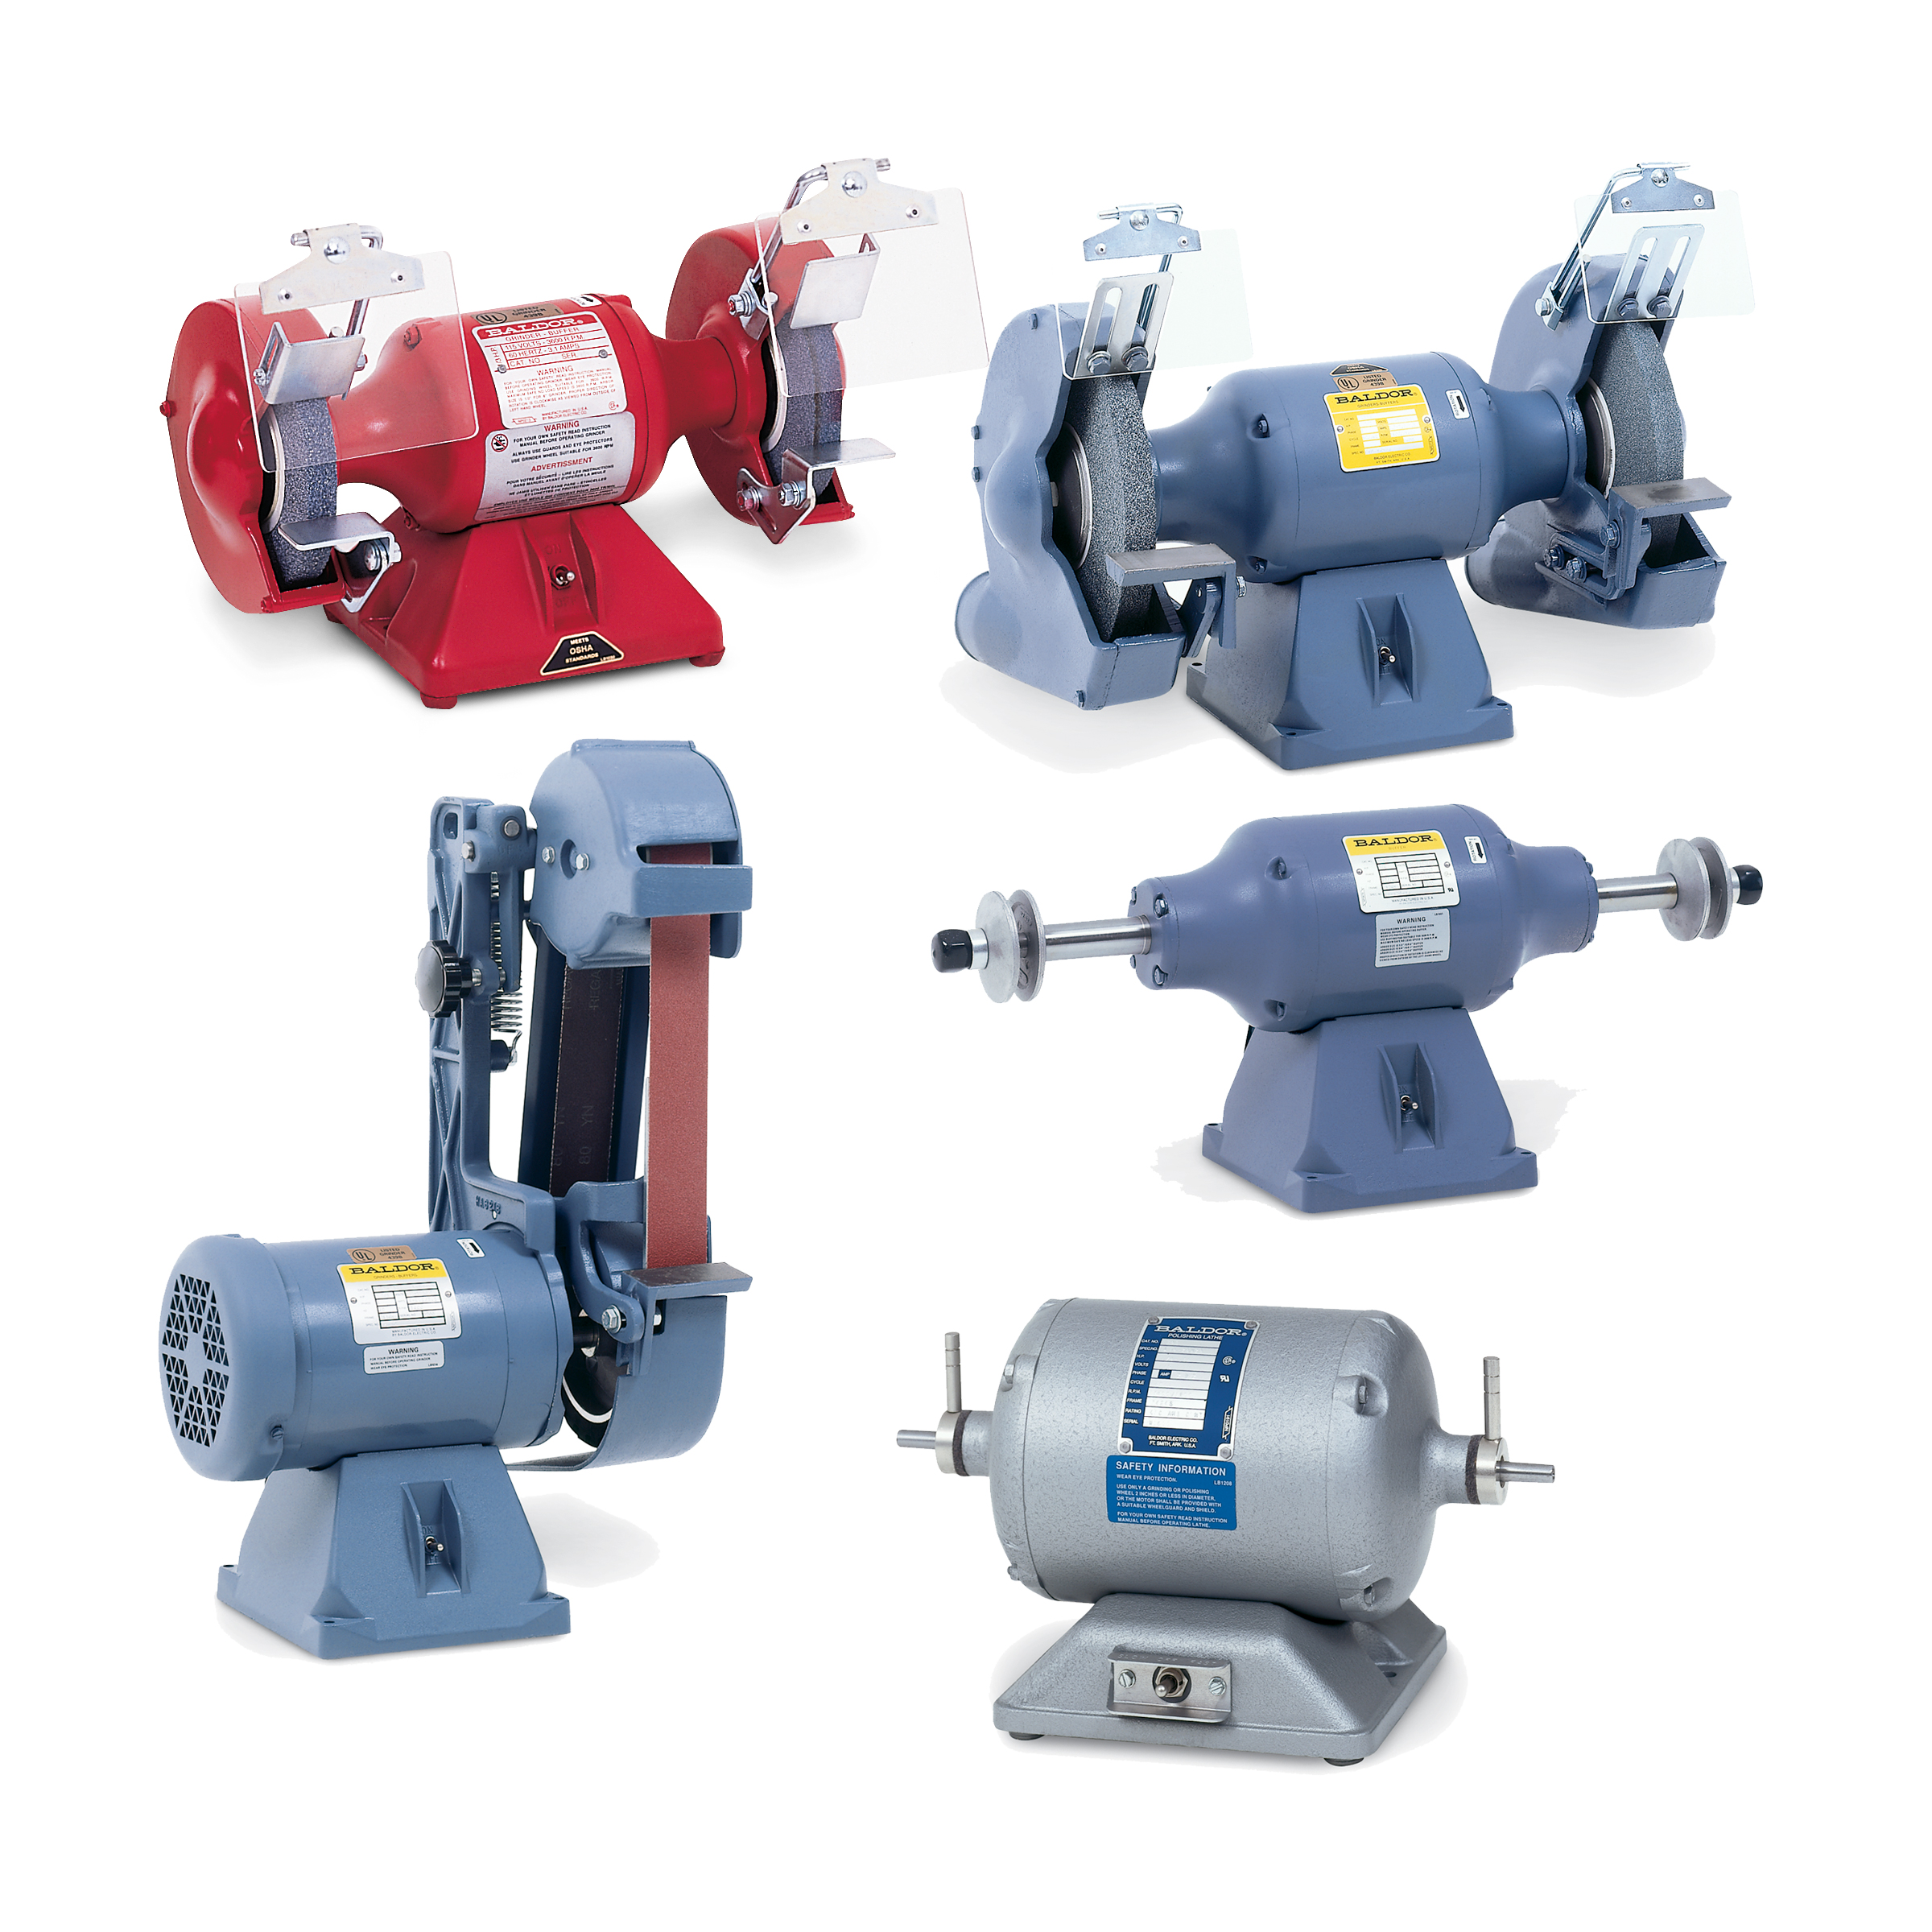 baldor reliance grinders buffers lathes sanders family.ashx?bc=white&as=1&w=1024 grinders, buffers, lathes baldor com  at mr168.co